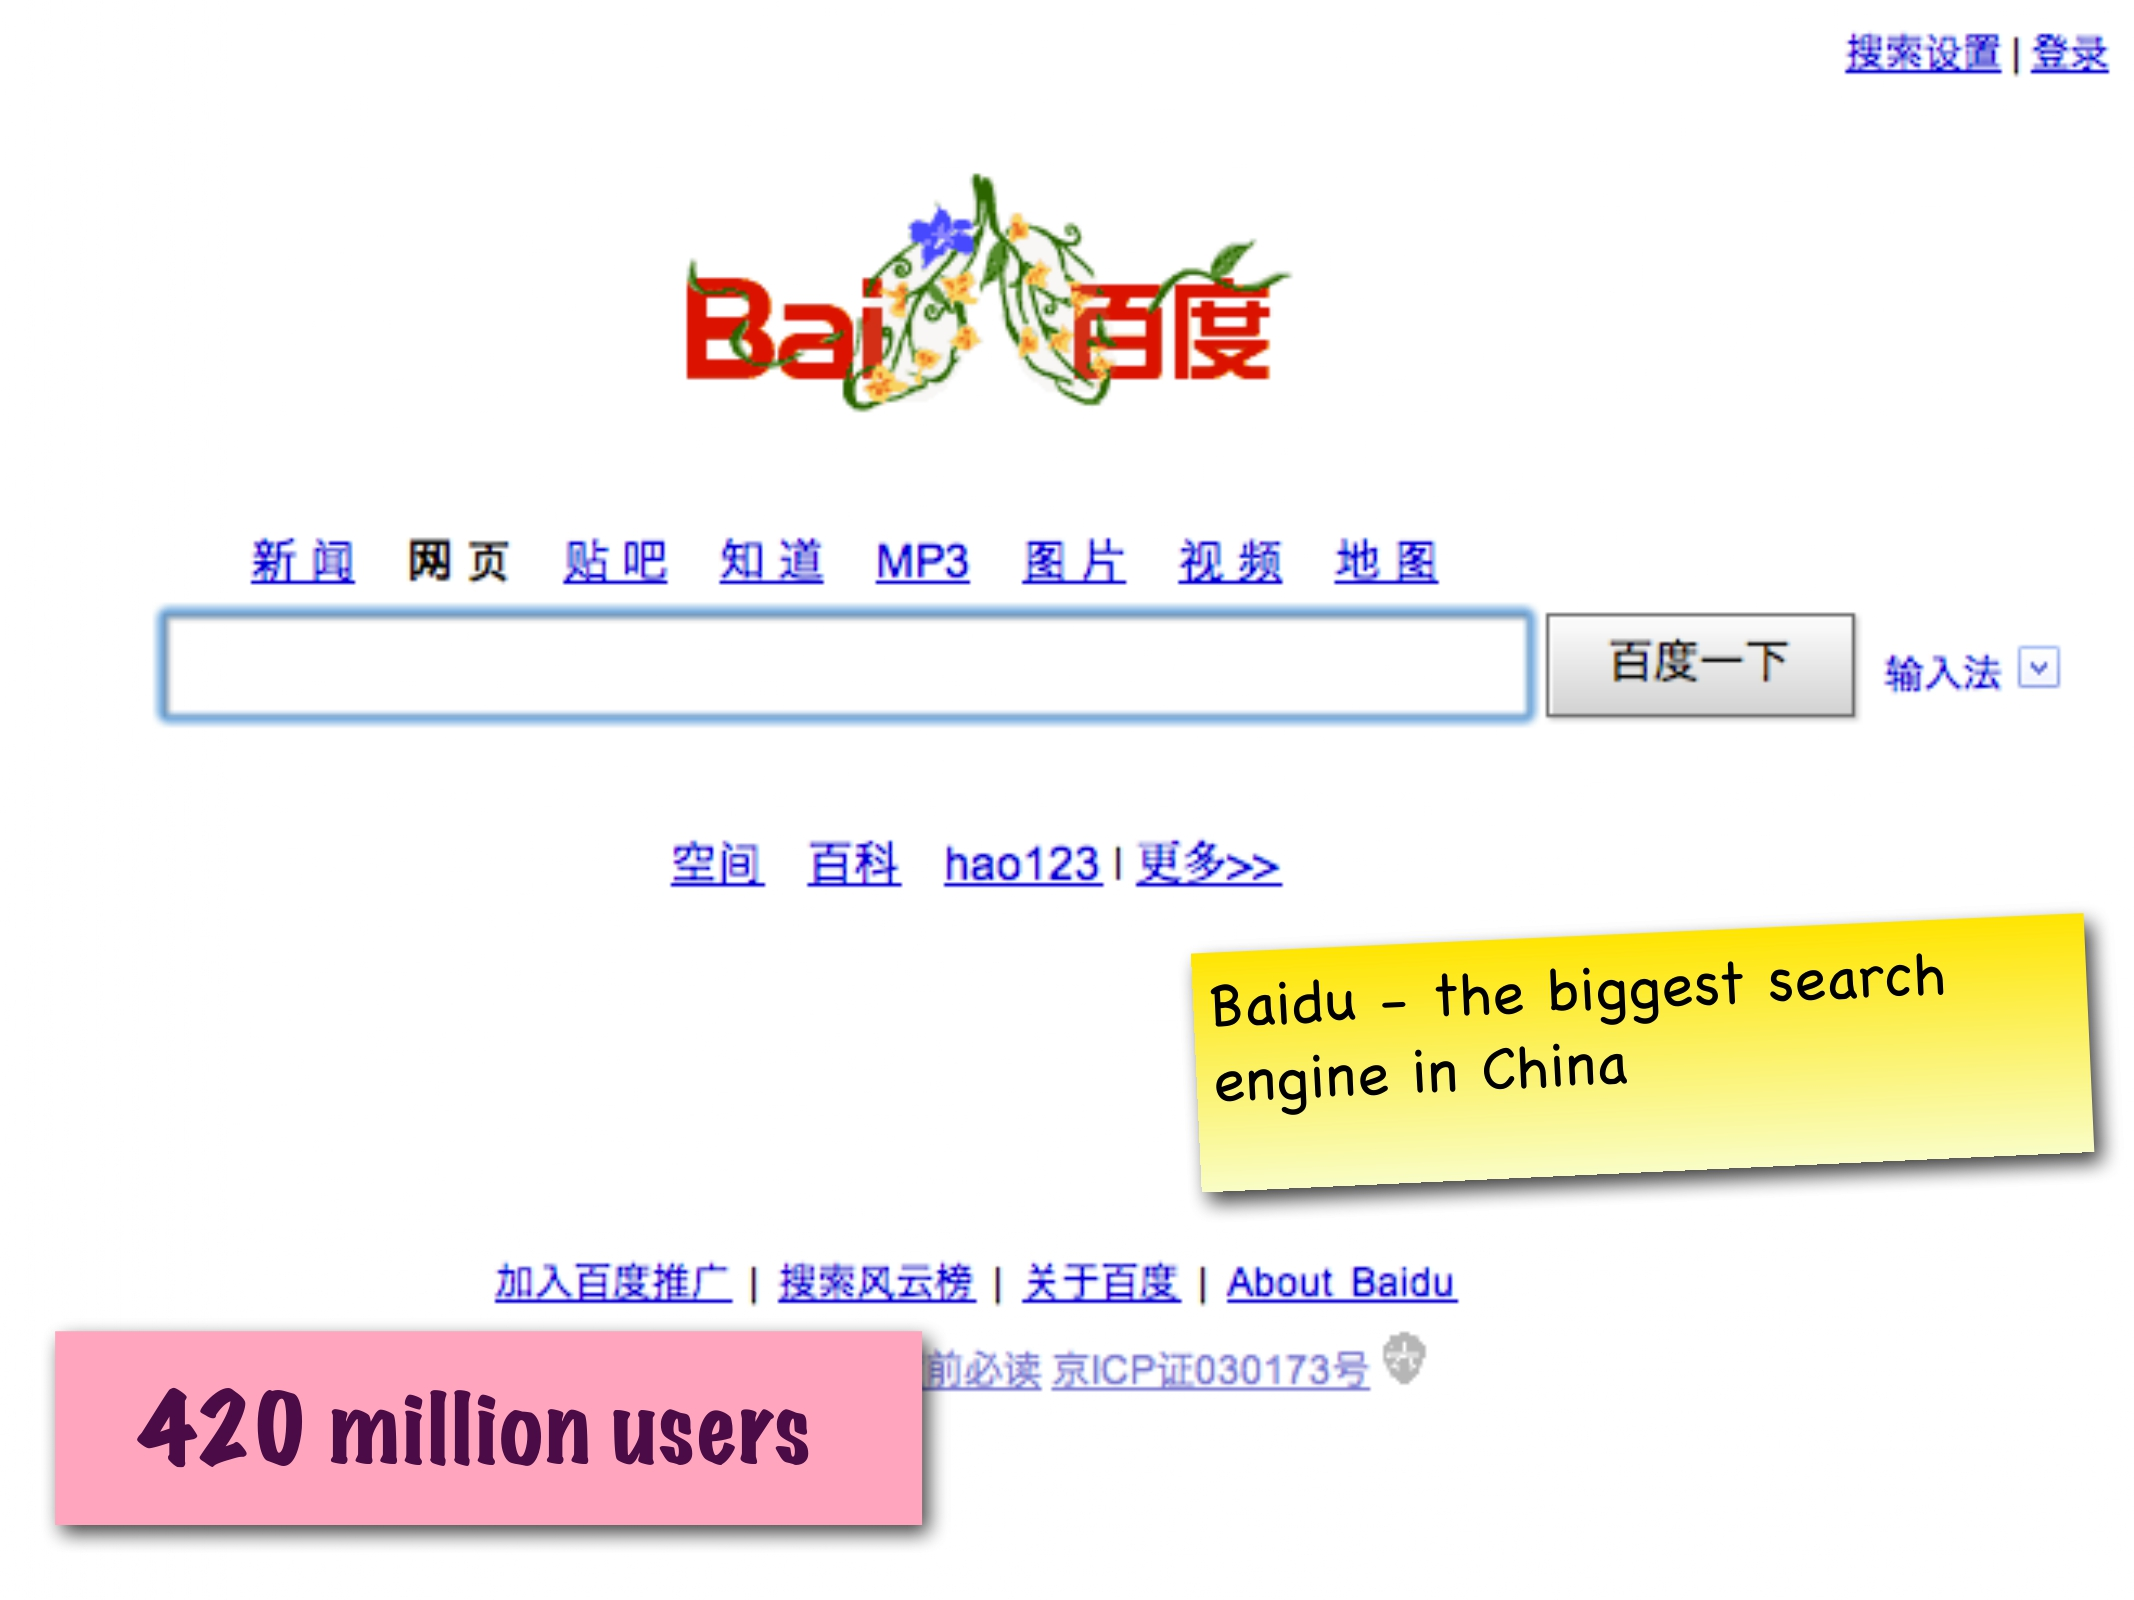 Chinese Web Design Patterns 2011_pages-to-jpg-0044.jpg